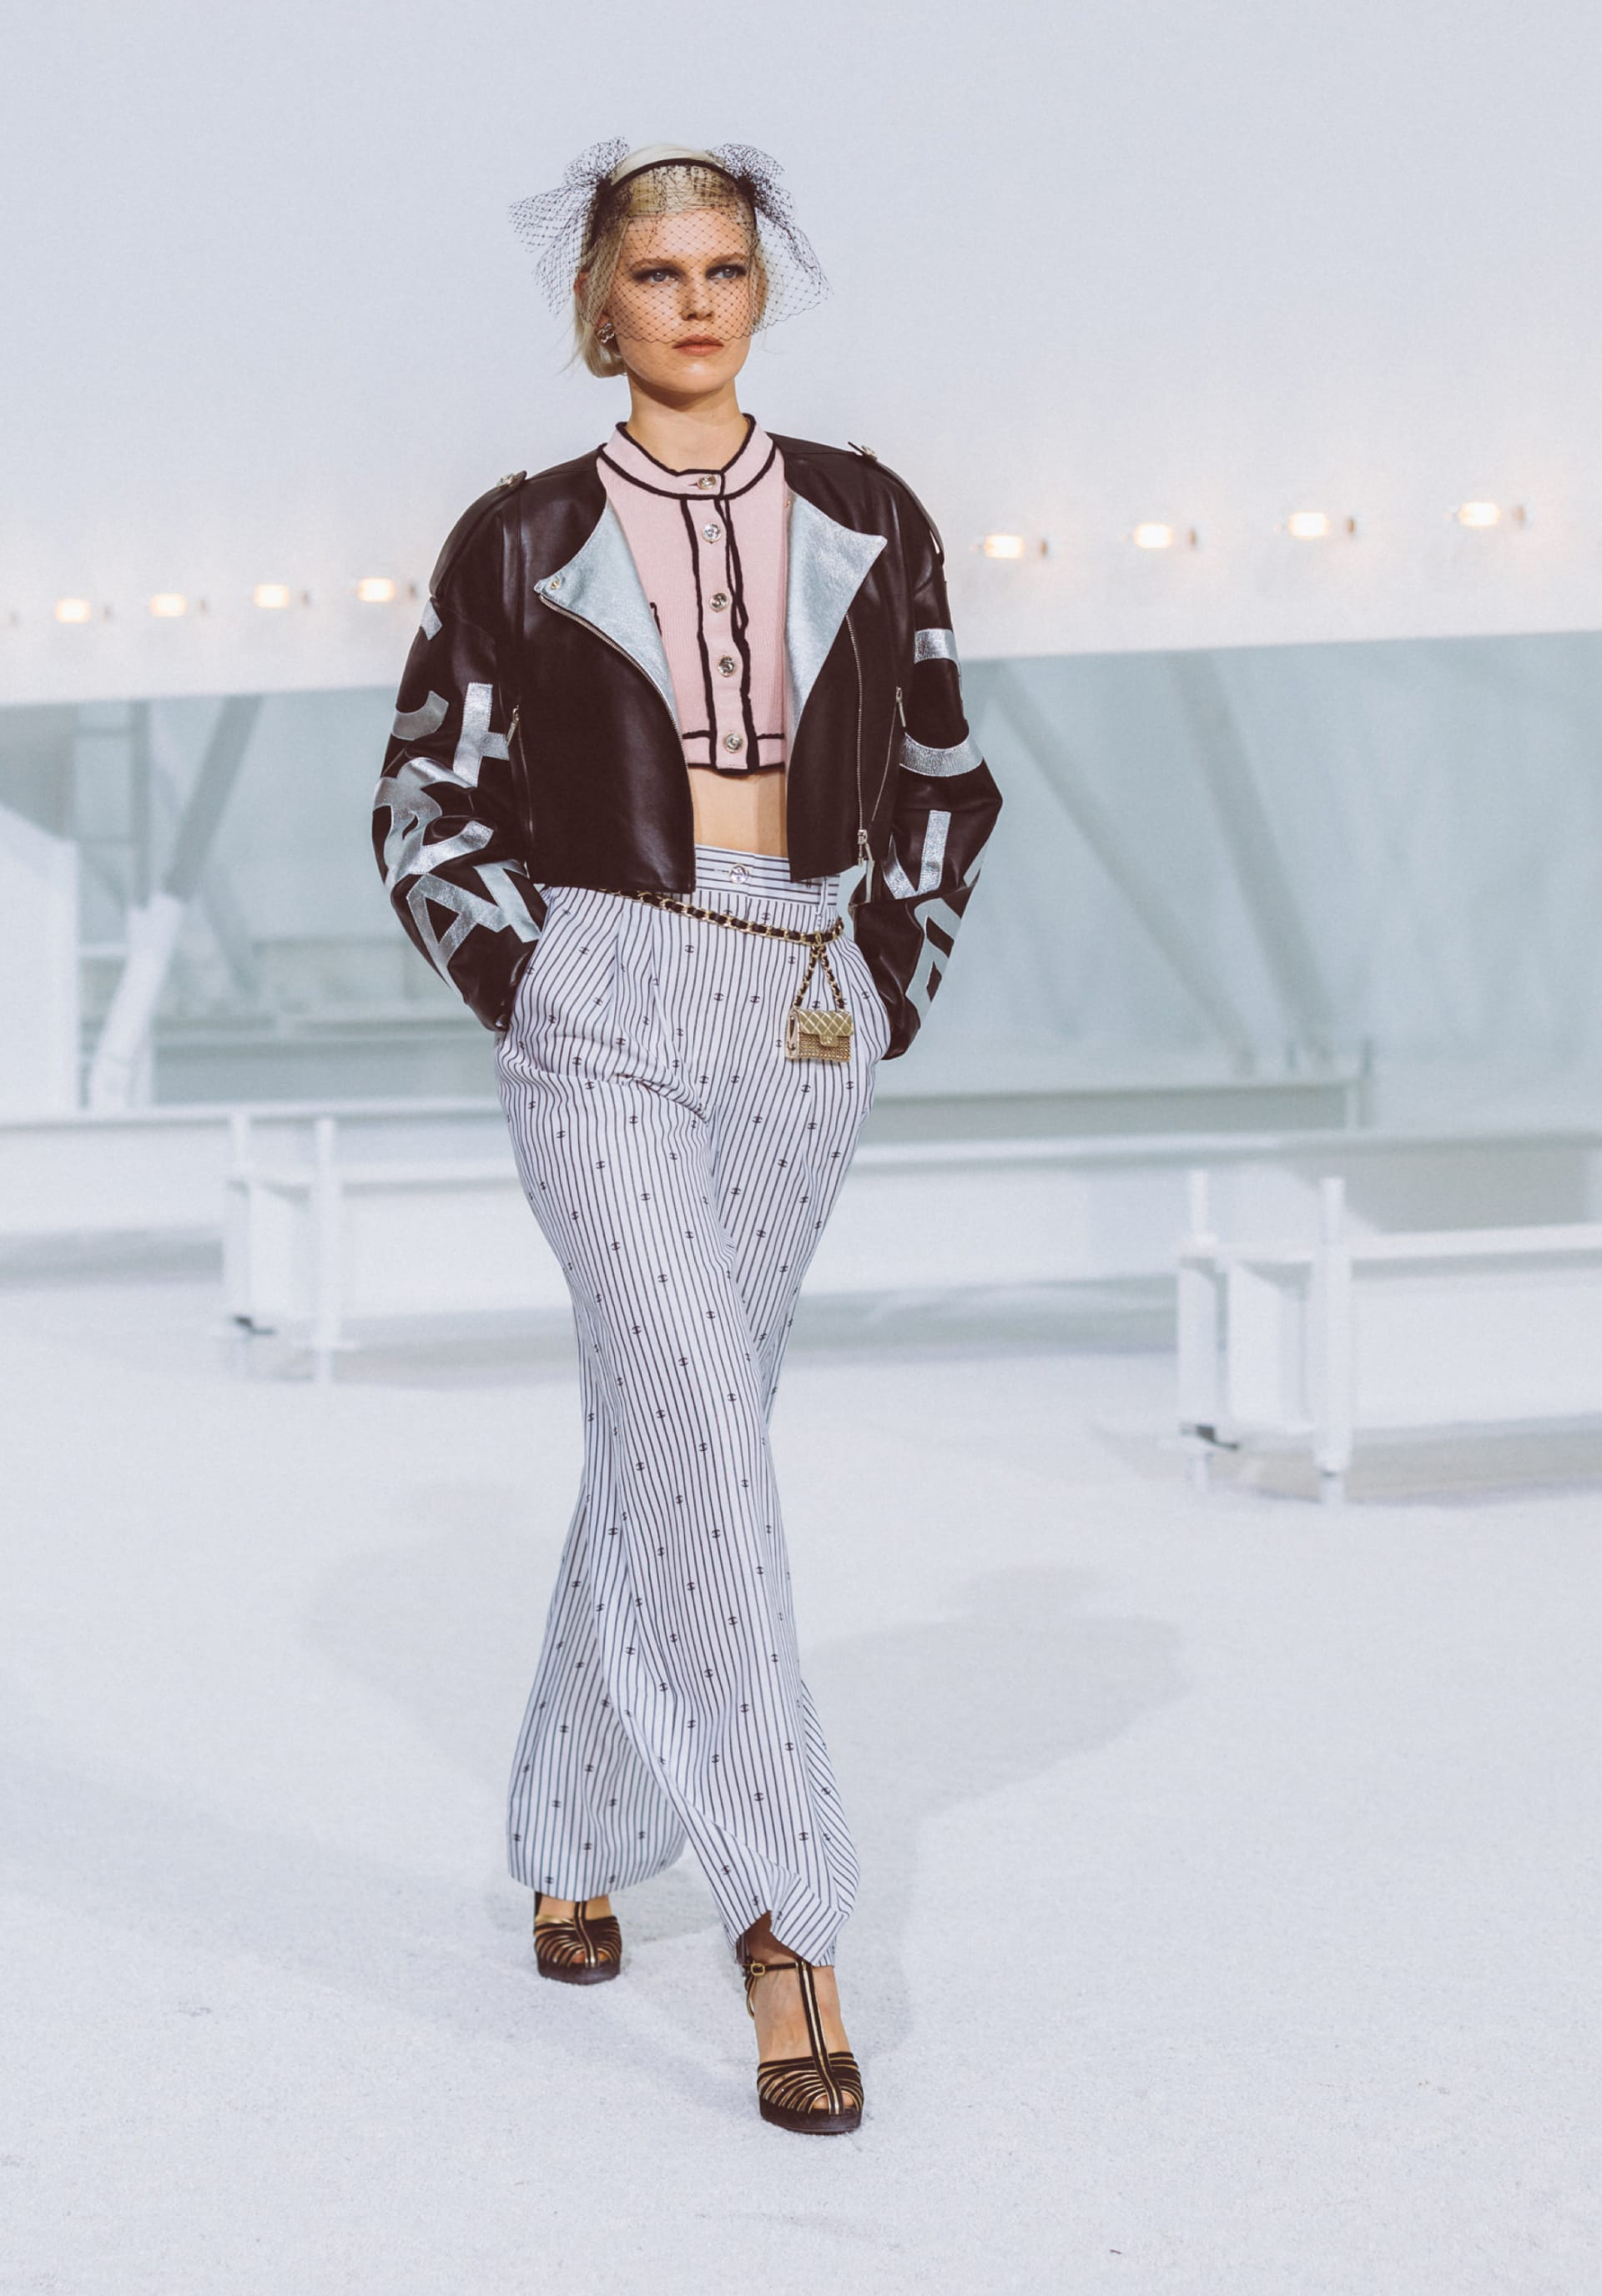 View 1 - Look9 - Spring-Summer 2021 - see full sized version